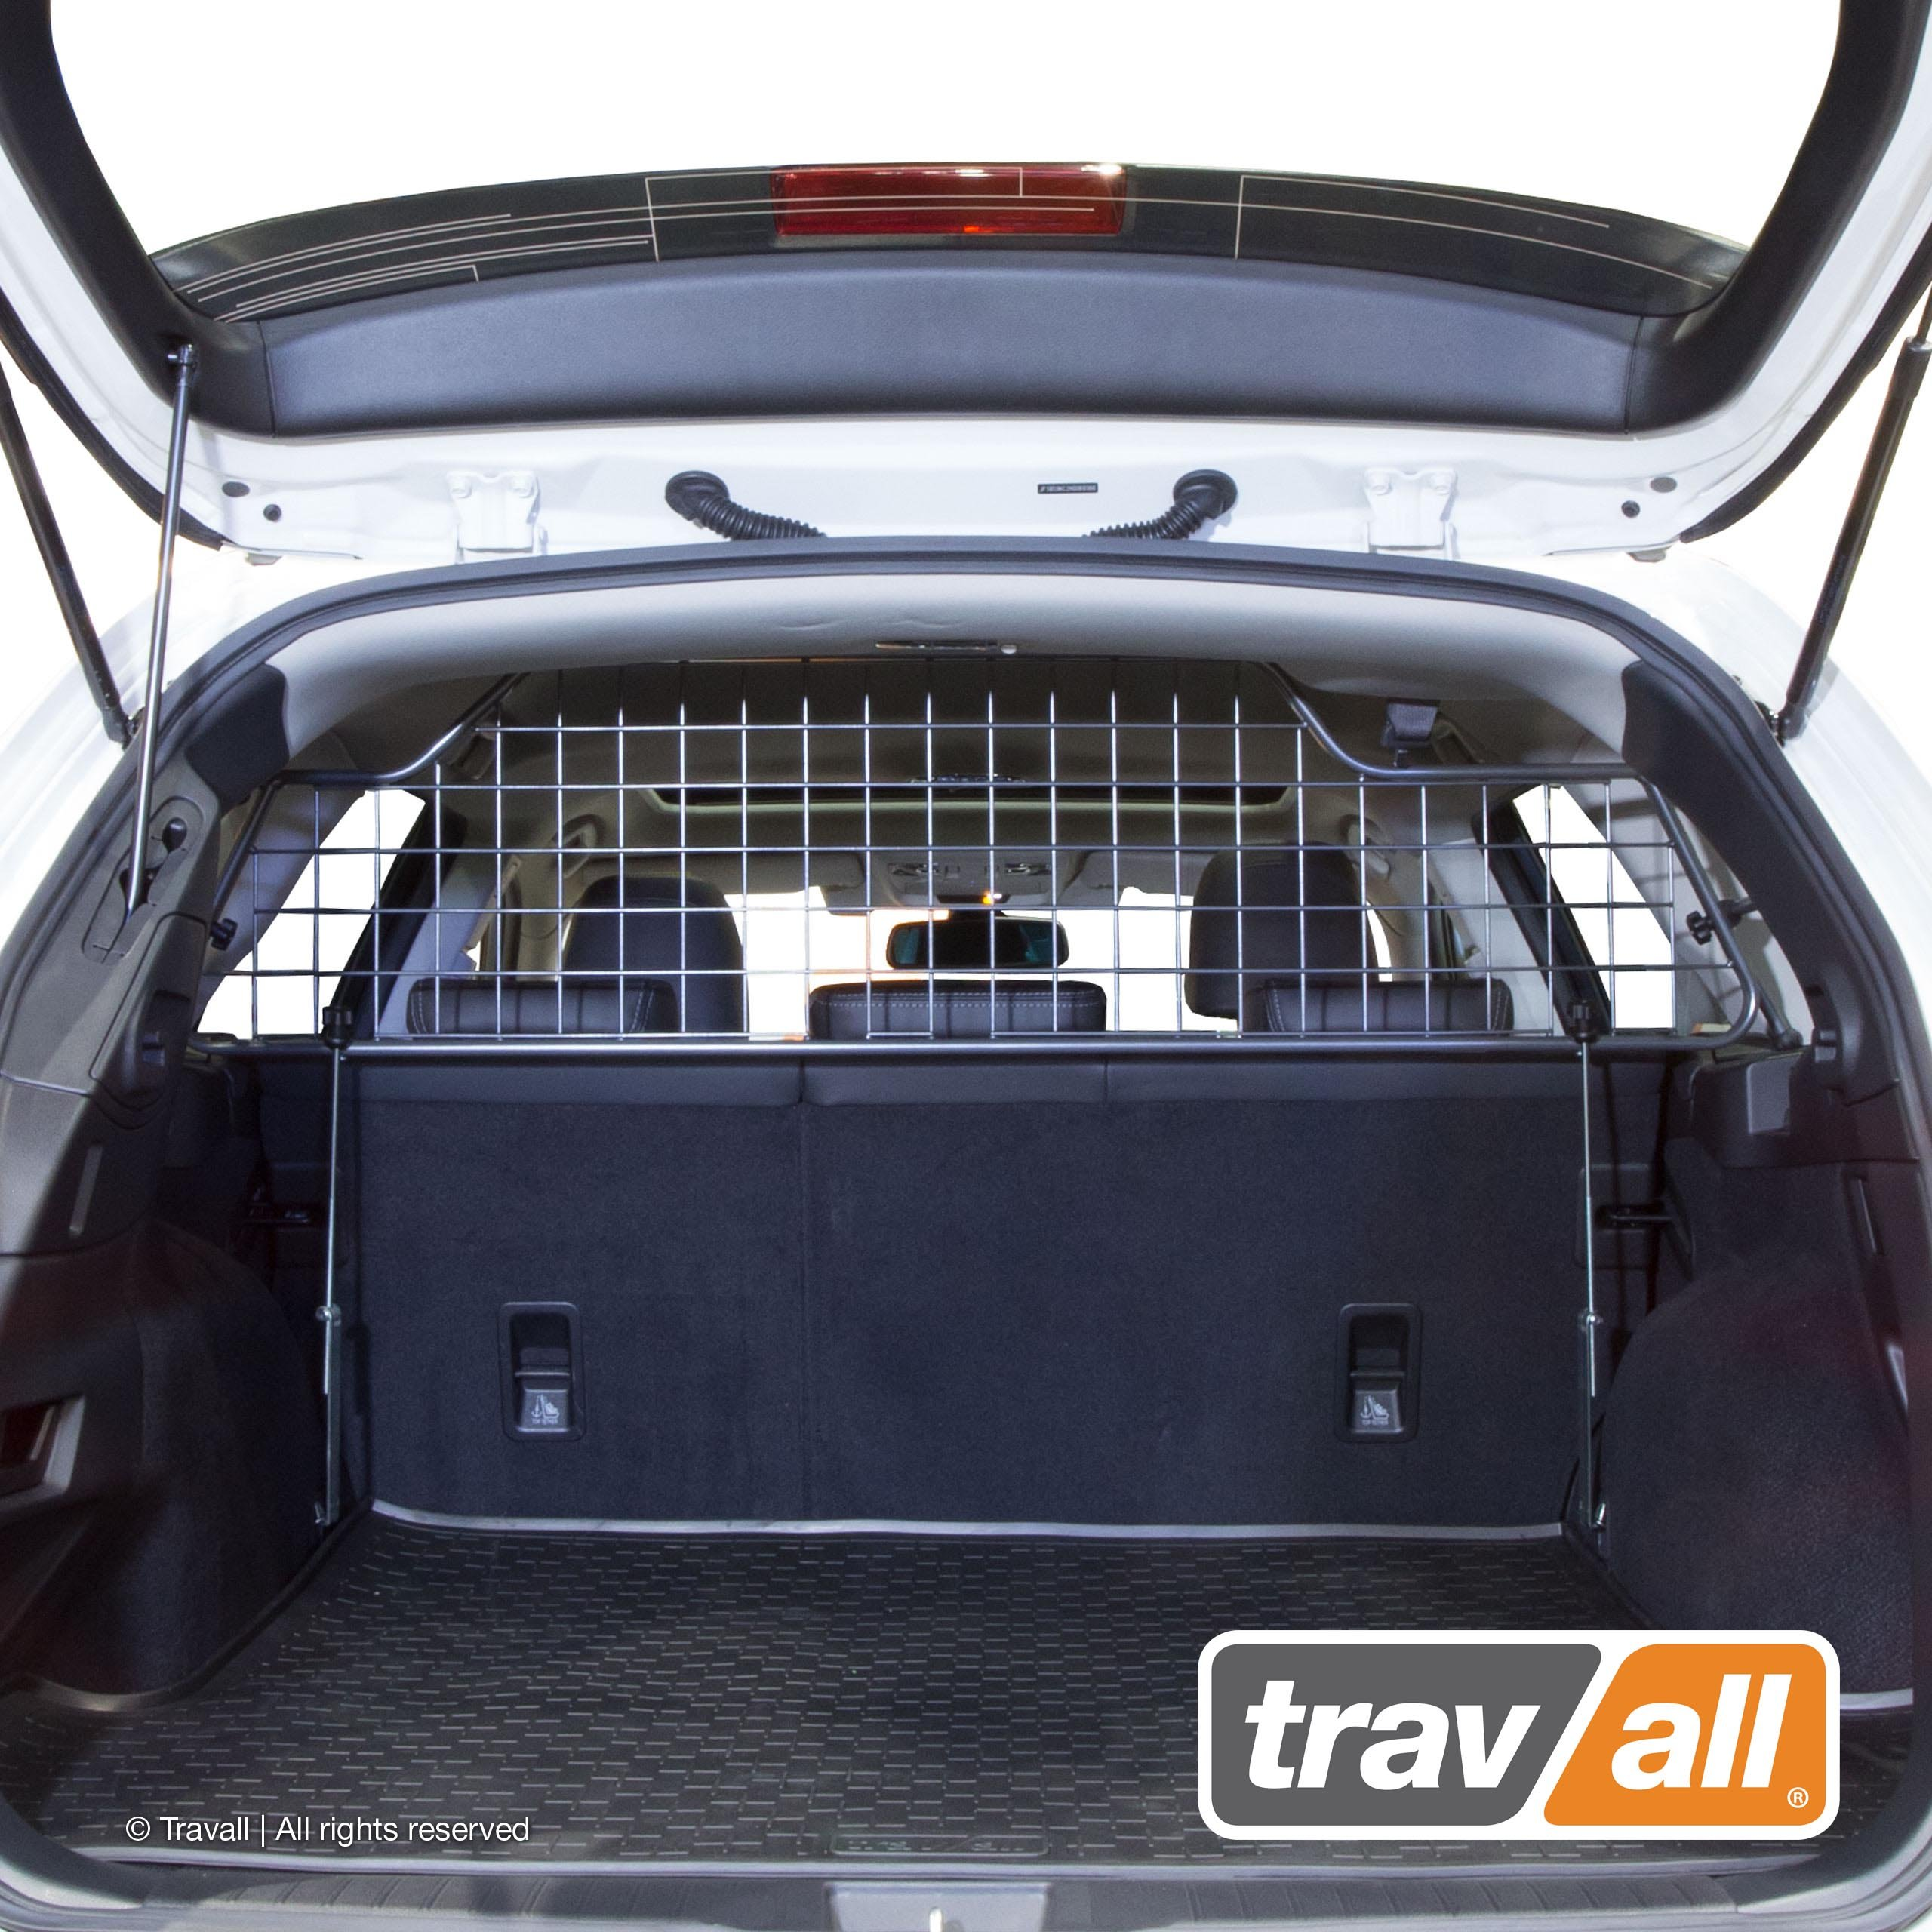 Travall Guard for Mercedes Benz C-Class Wagon (2014-Current) TDG1469 - Rattle-Free Steel Pet Barrier